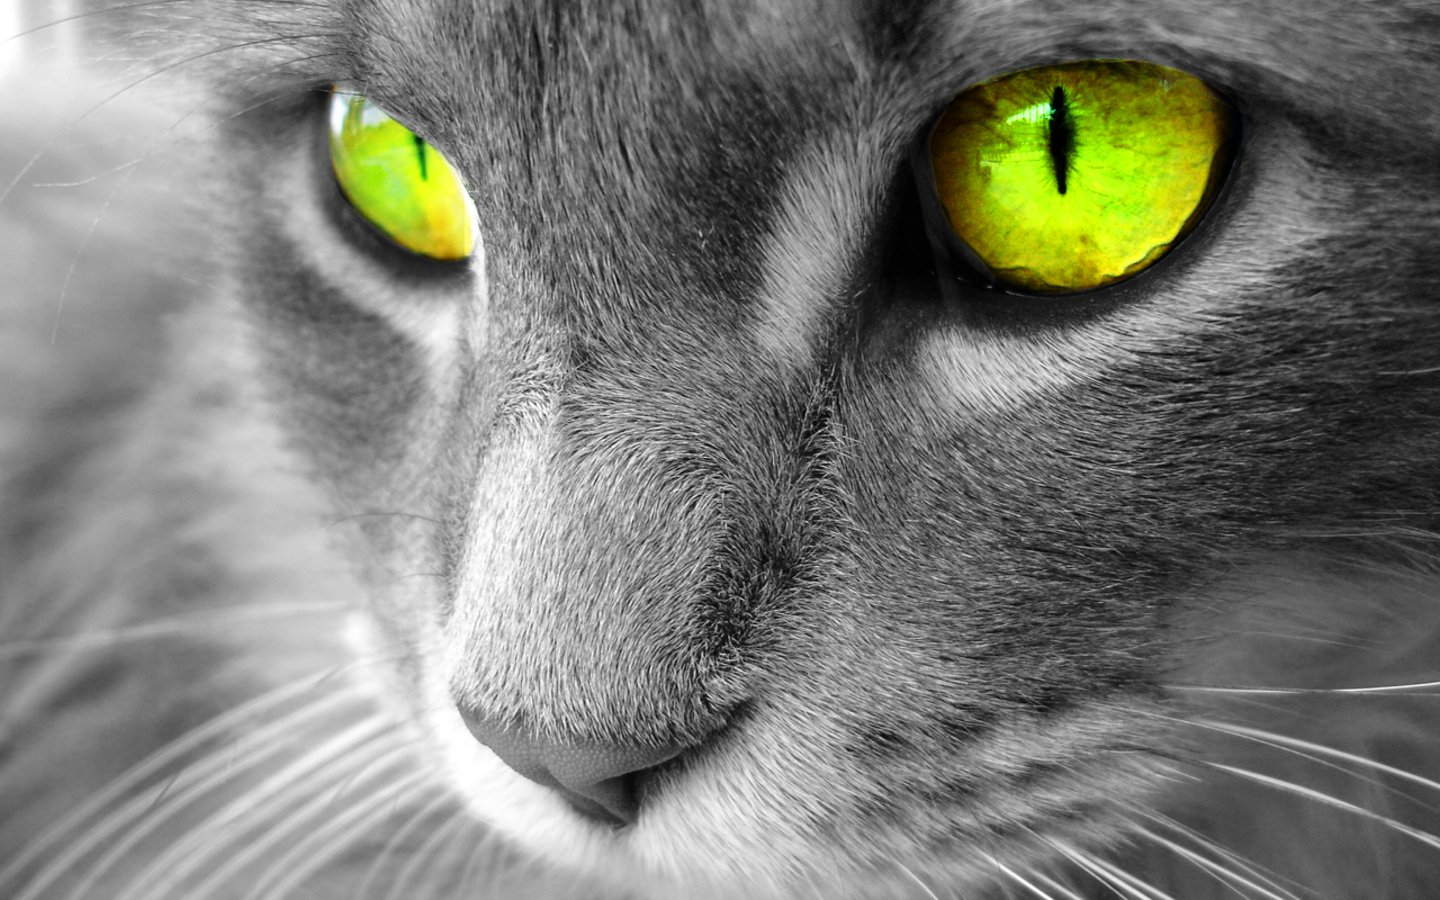 http://2.bp.blogspot.com/-PzVUpeDU5k4/T6lLK1Or9-I/AAAAAAAAAMc/enZMDwmf7bI/s1600/The-best-top-desktop-cat-wallpapers-3.jpg